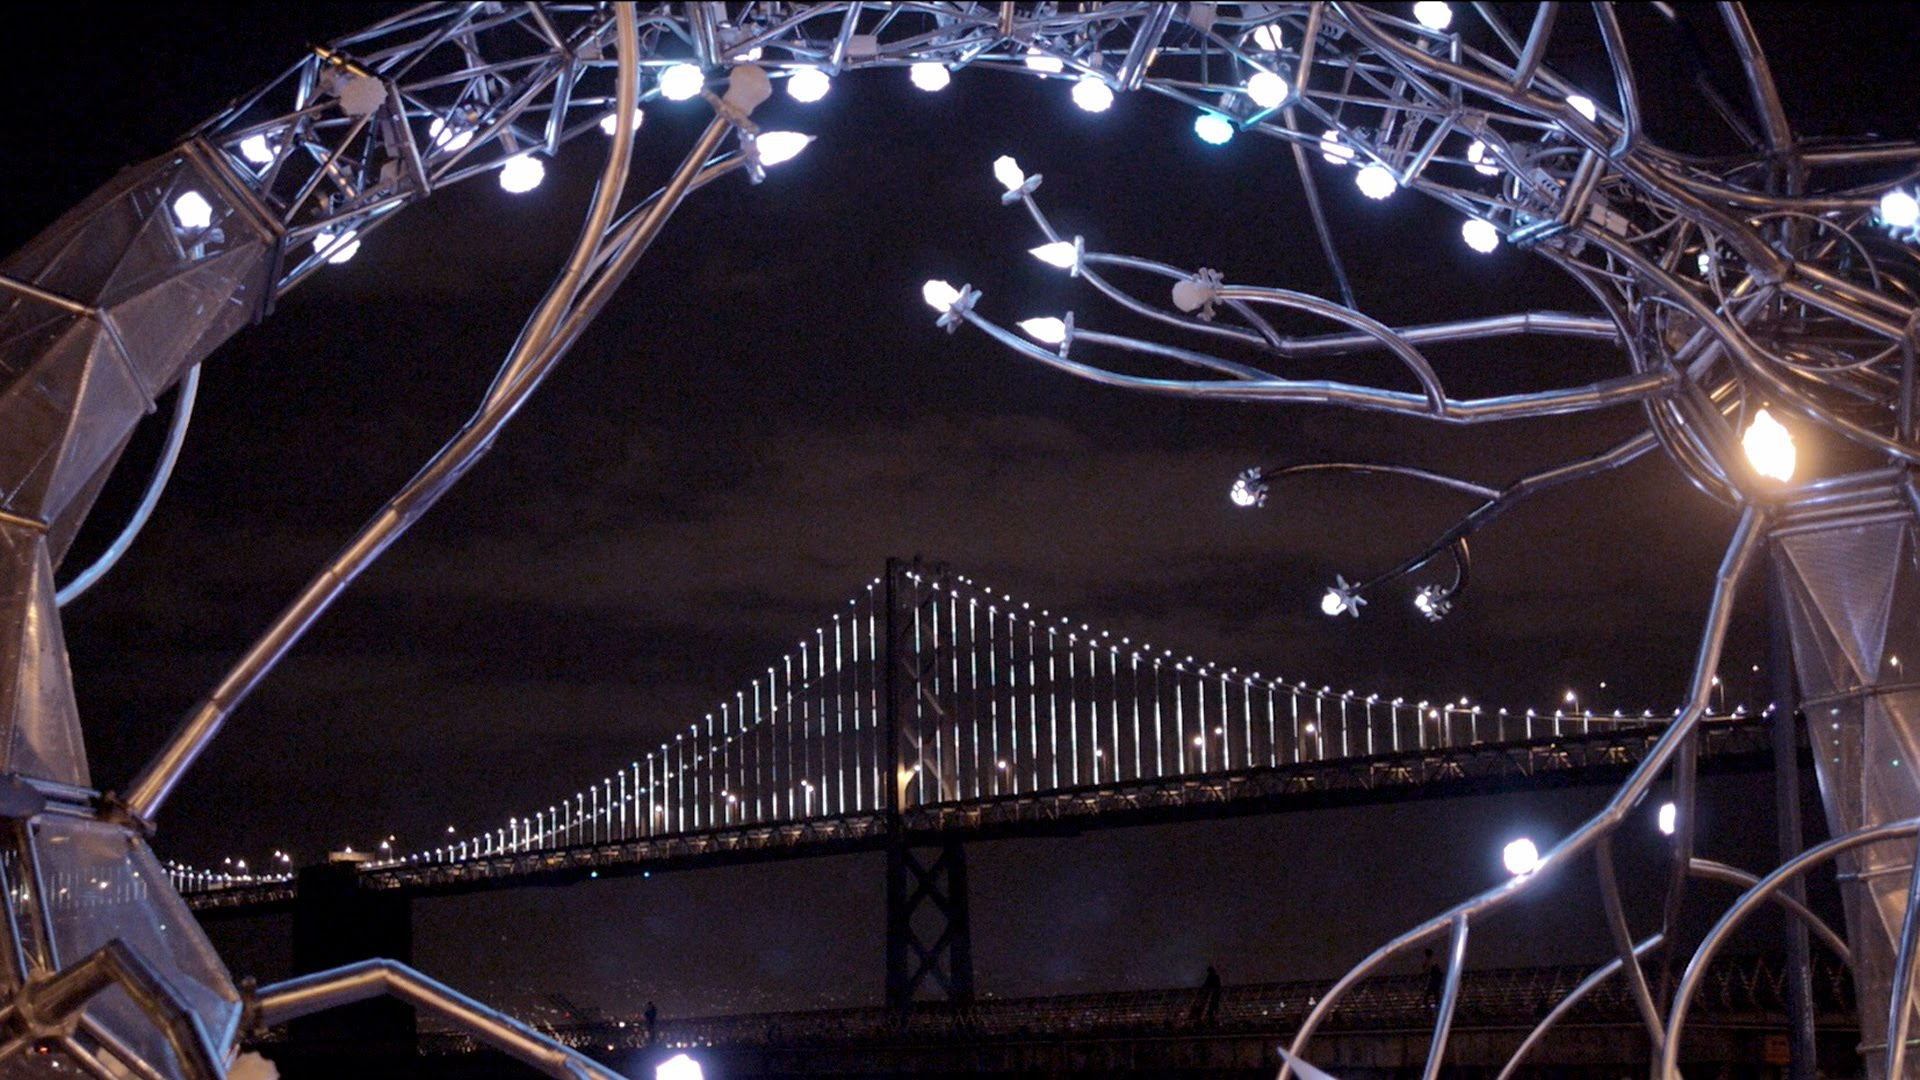 With New Light Installations San Francisco Is Quickly Becoming a Destination for Illuminated Art